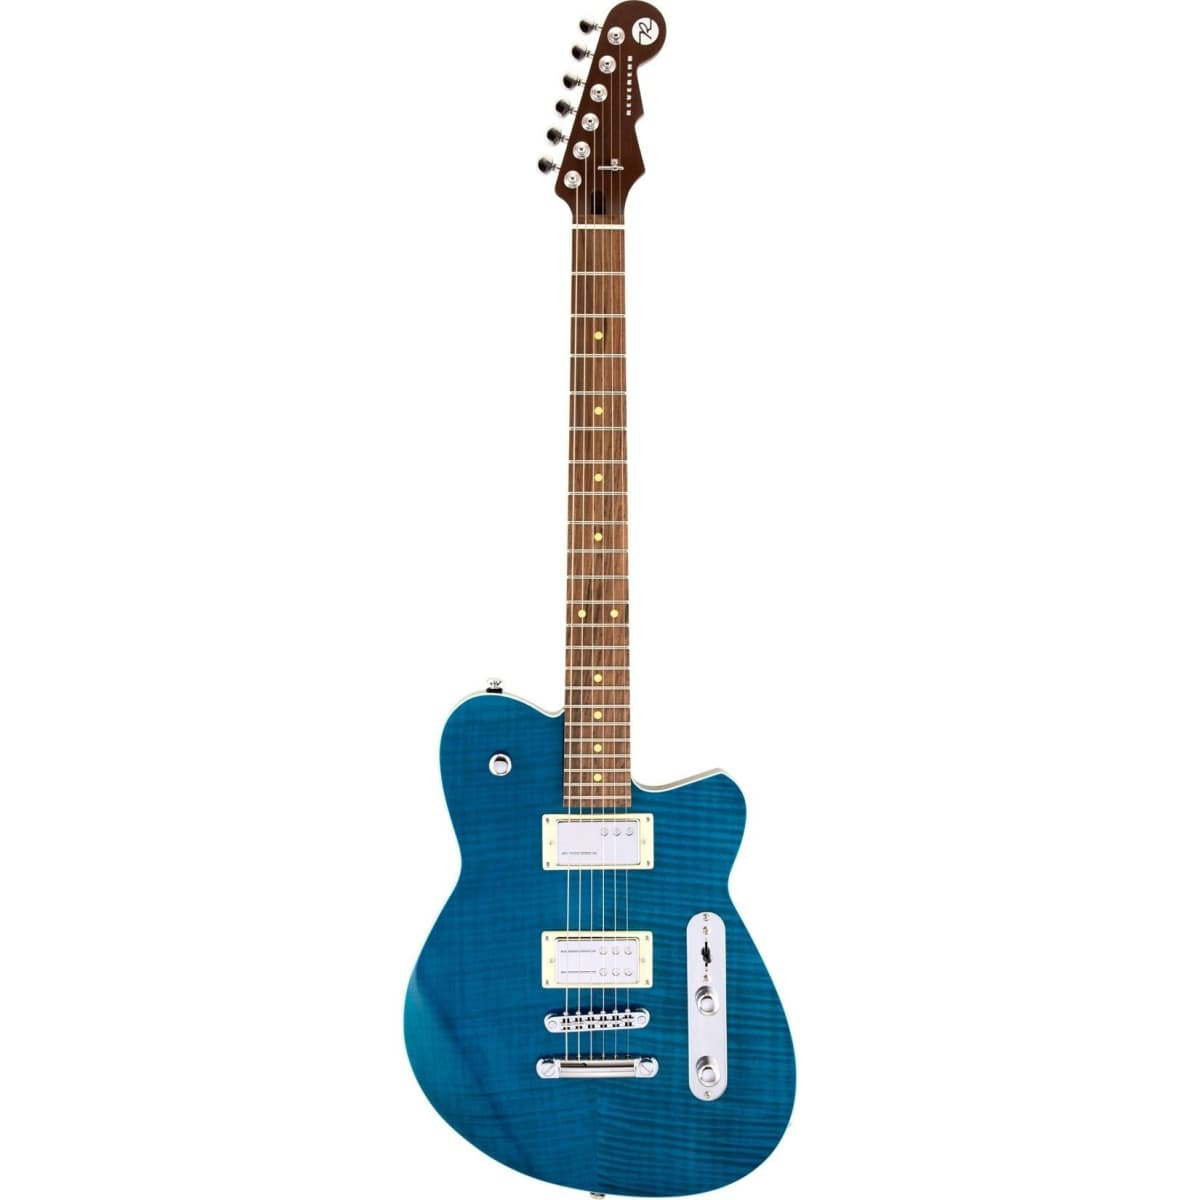 Reverend Charger RA Electric Guitar Transparent Turquoise